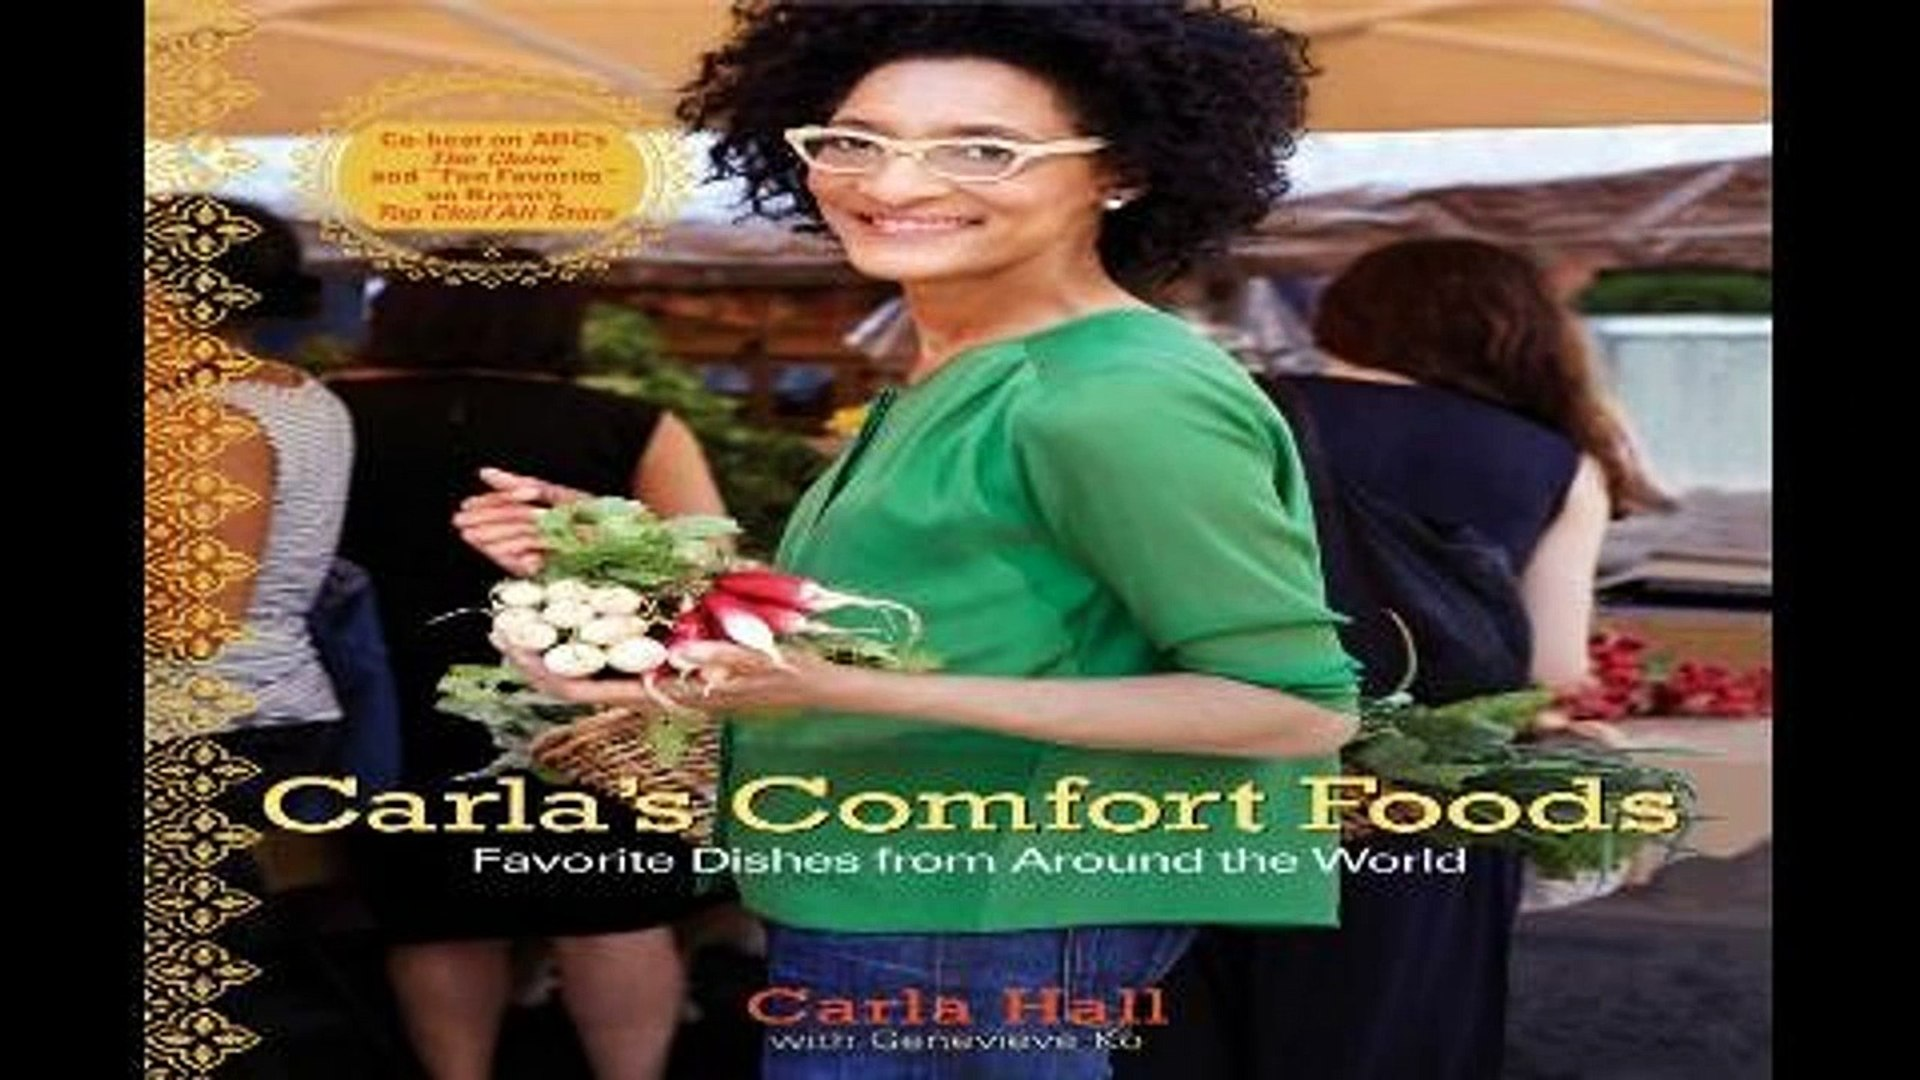 Favorite Dishes from Around the World Carlas Comfort Foods